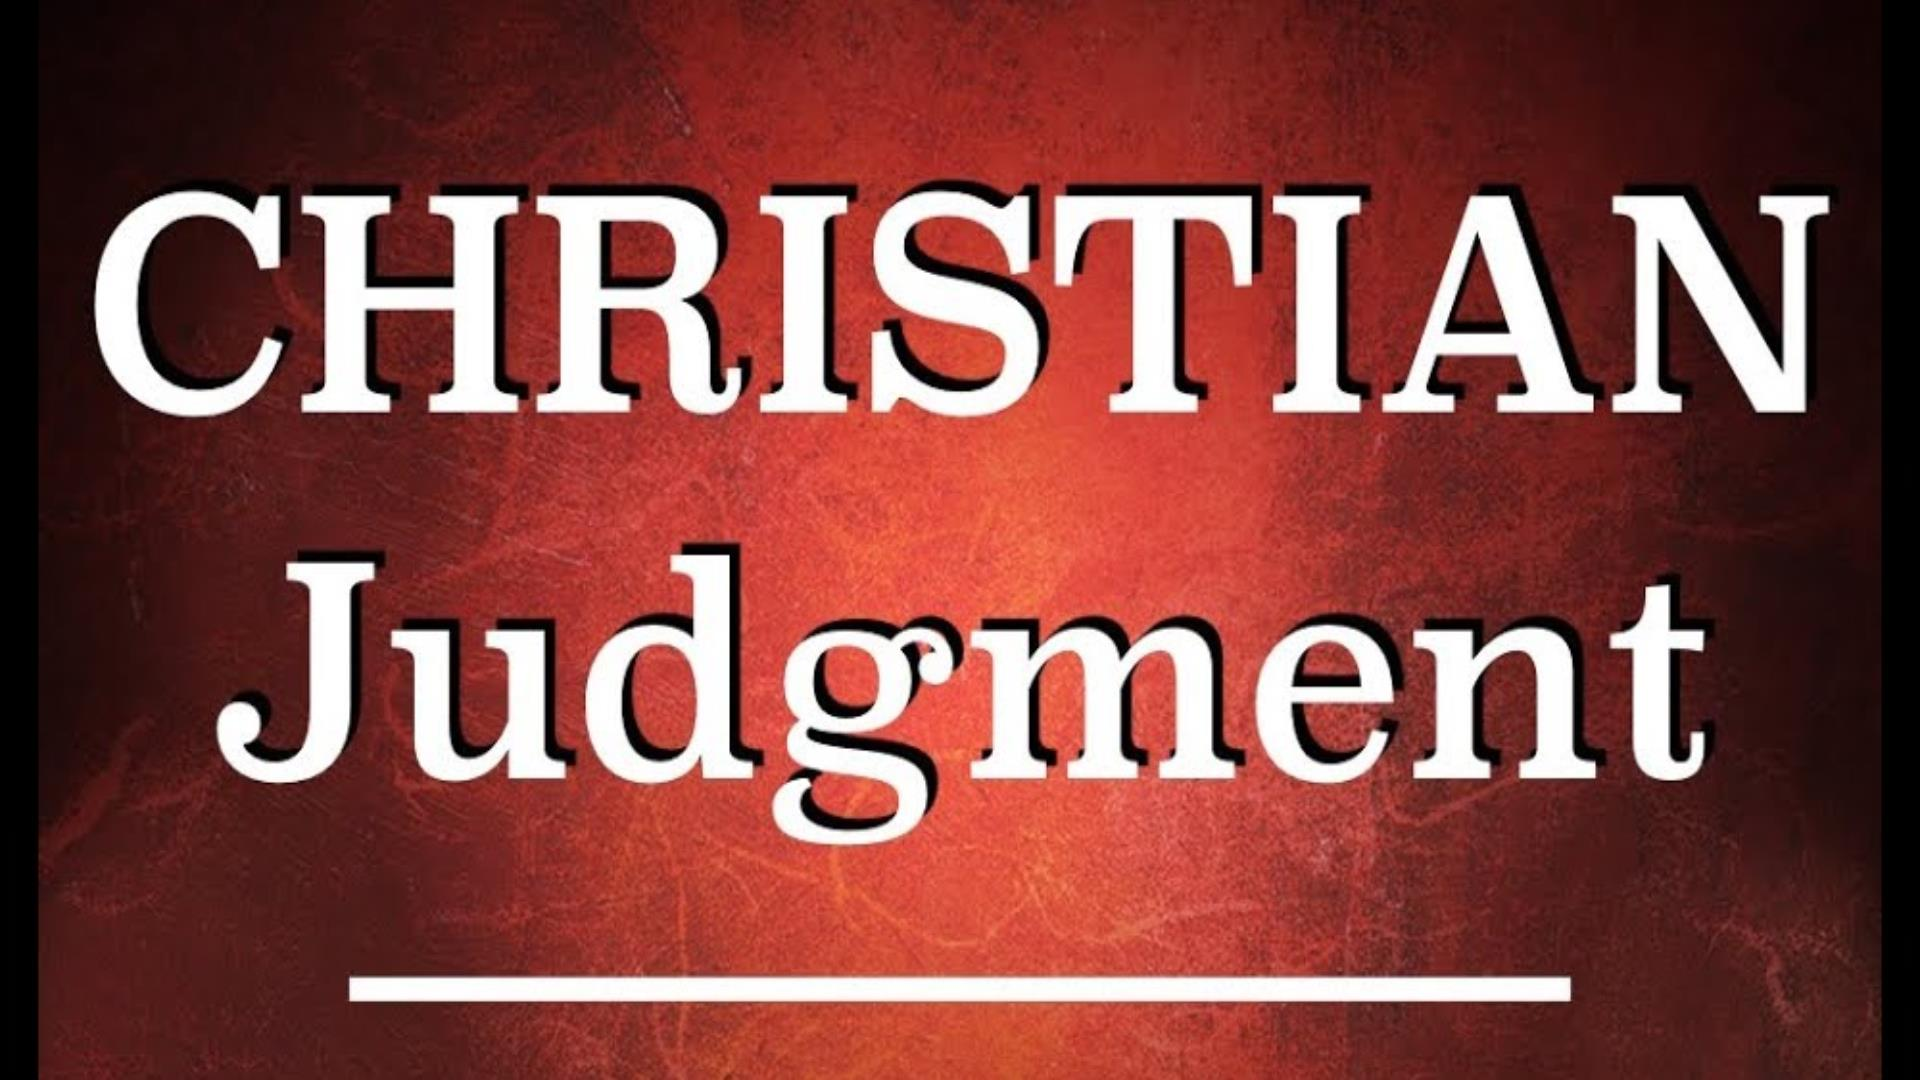 Christian Judgment